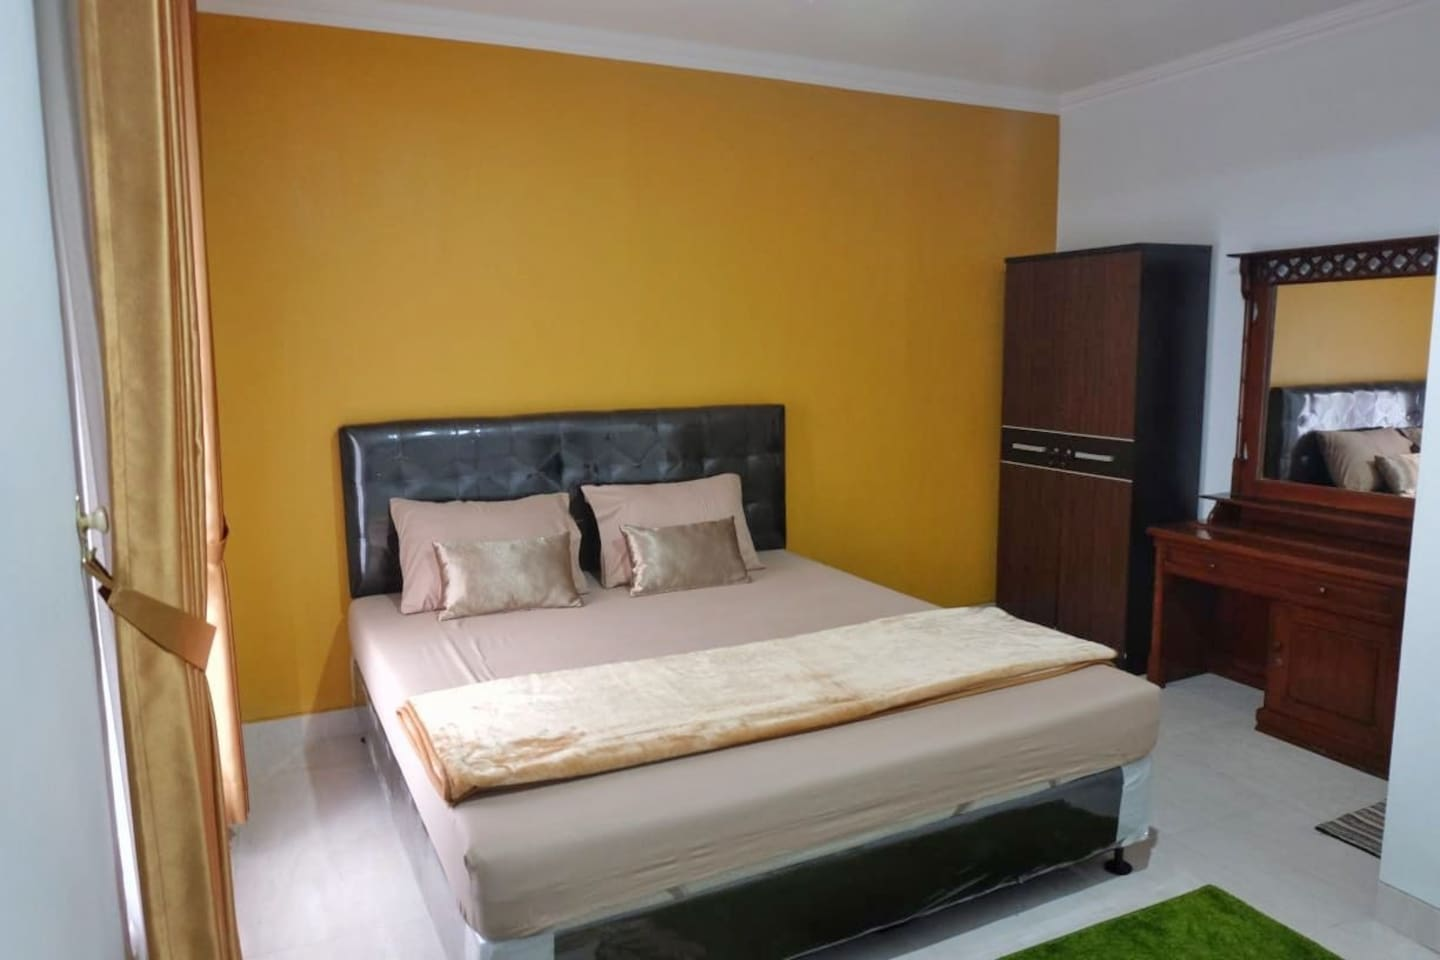 Room 201. The bed size is 180x200cm, fit for 2 adults or 2 adults+1 child/baby